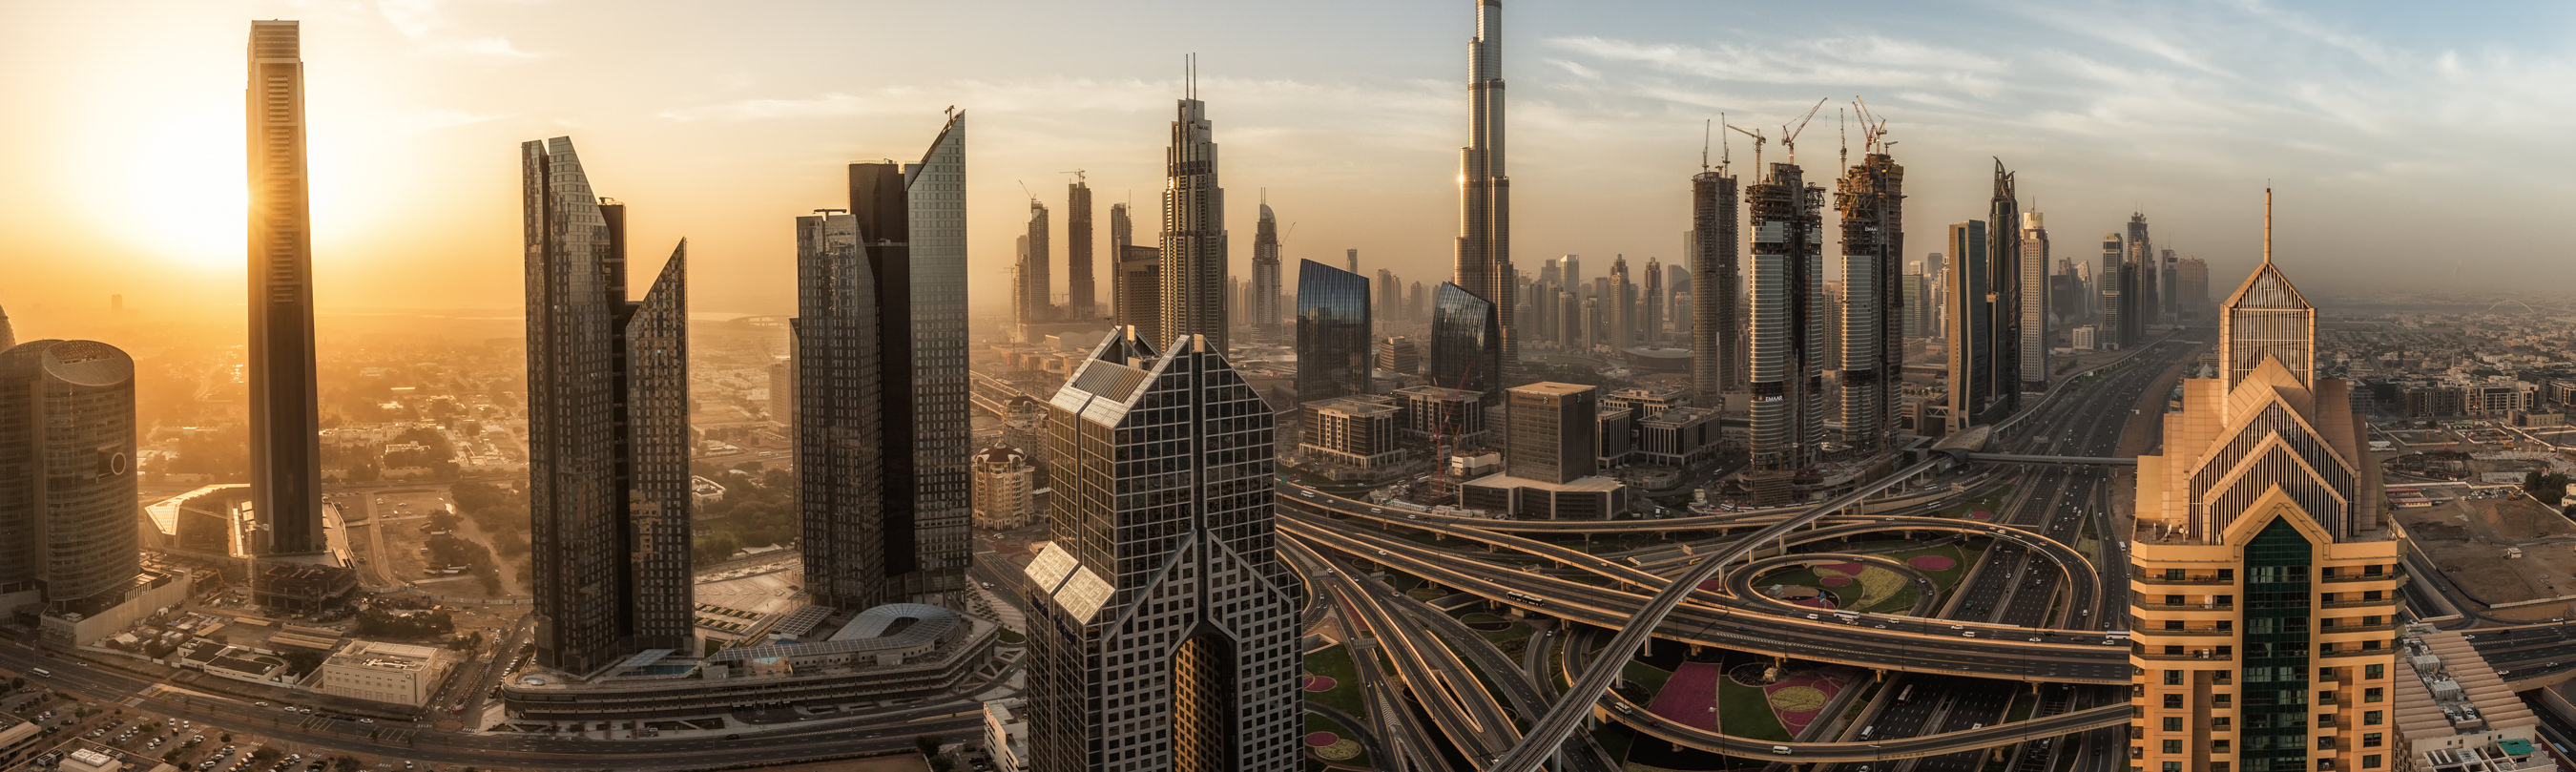 Cityscape of Dubai during Sunrise